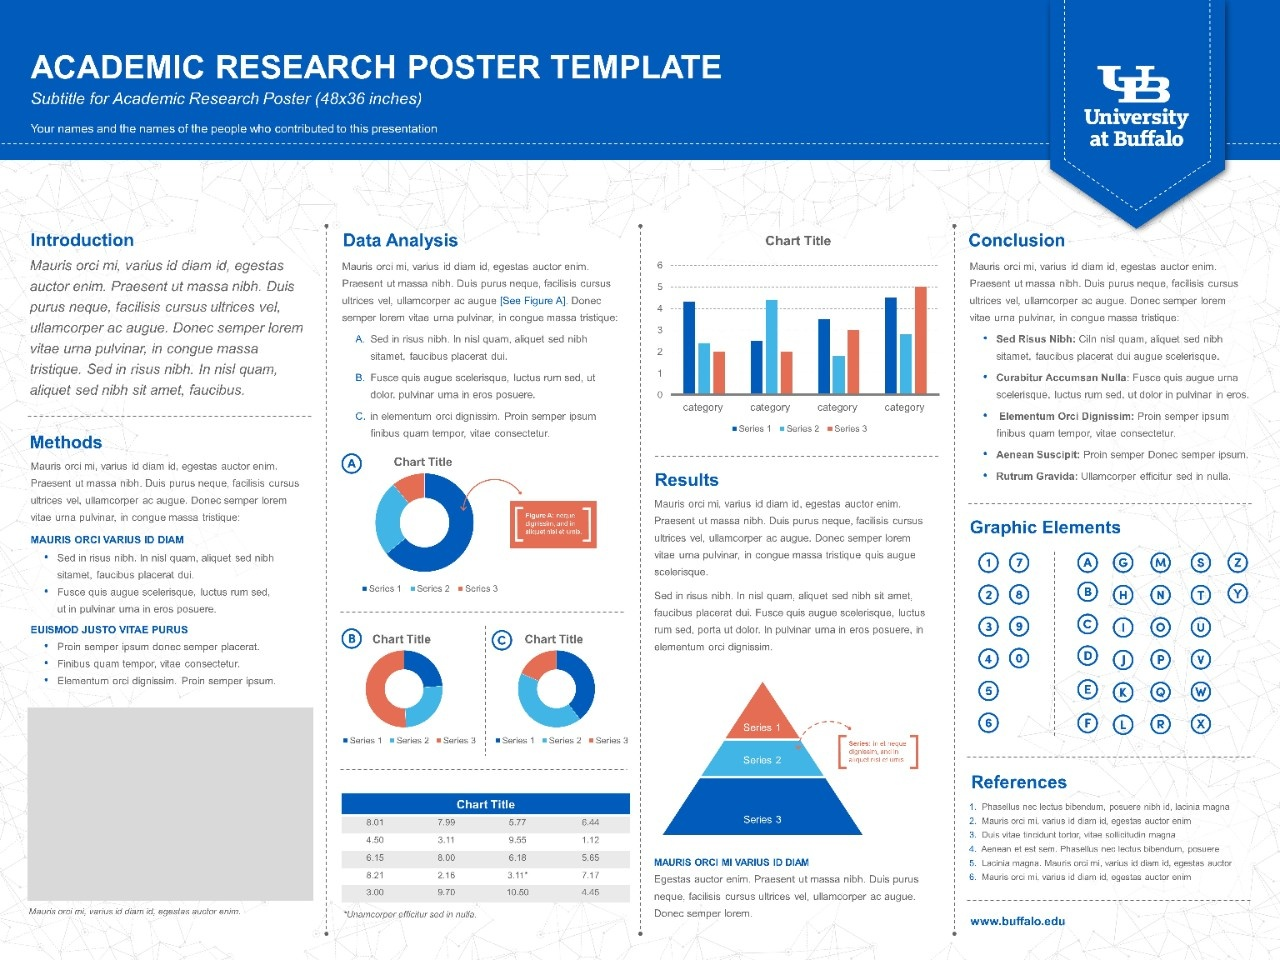 presentation templates - university at buffalo school of social work, Presentation Background Template, Presentation templates